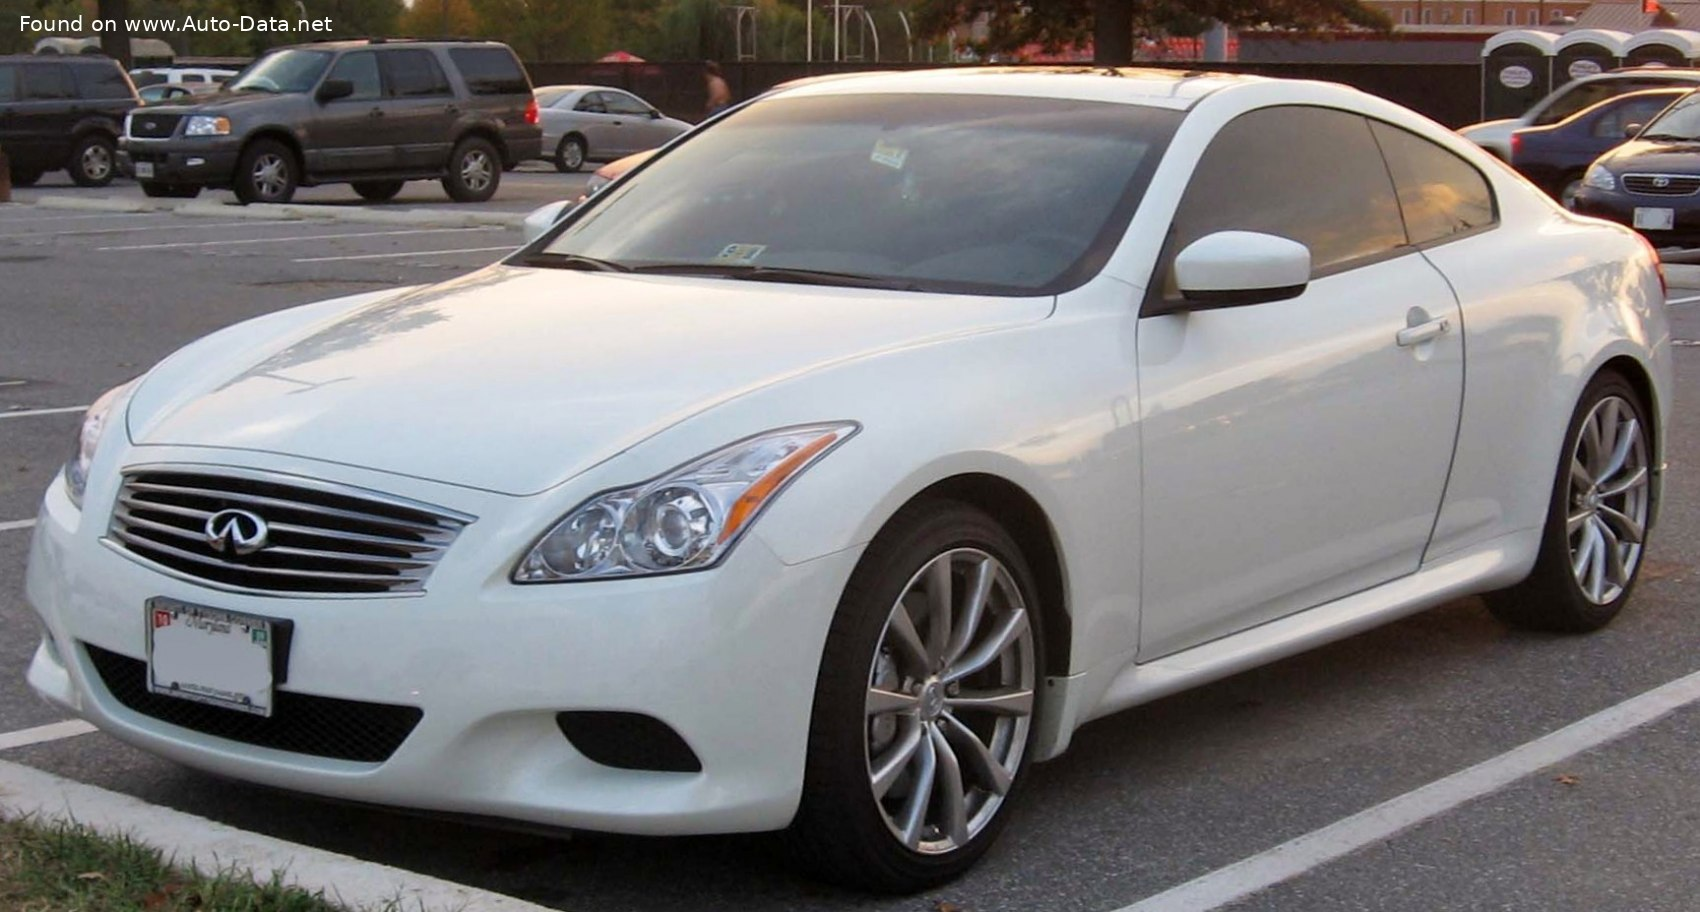 2009 Infiniti G37 Coupe 3 7 V6 320 Hp Automatic Technical Specs Data Fuel Consumption Dimensions